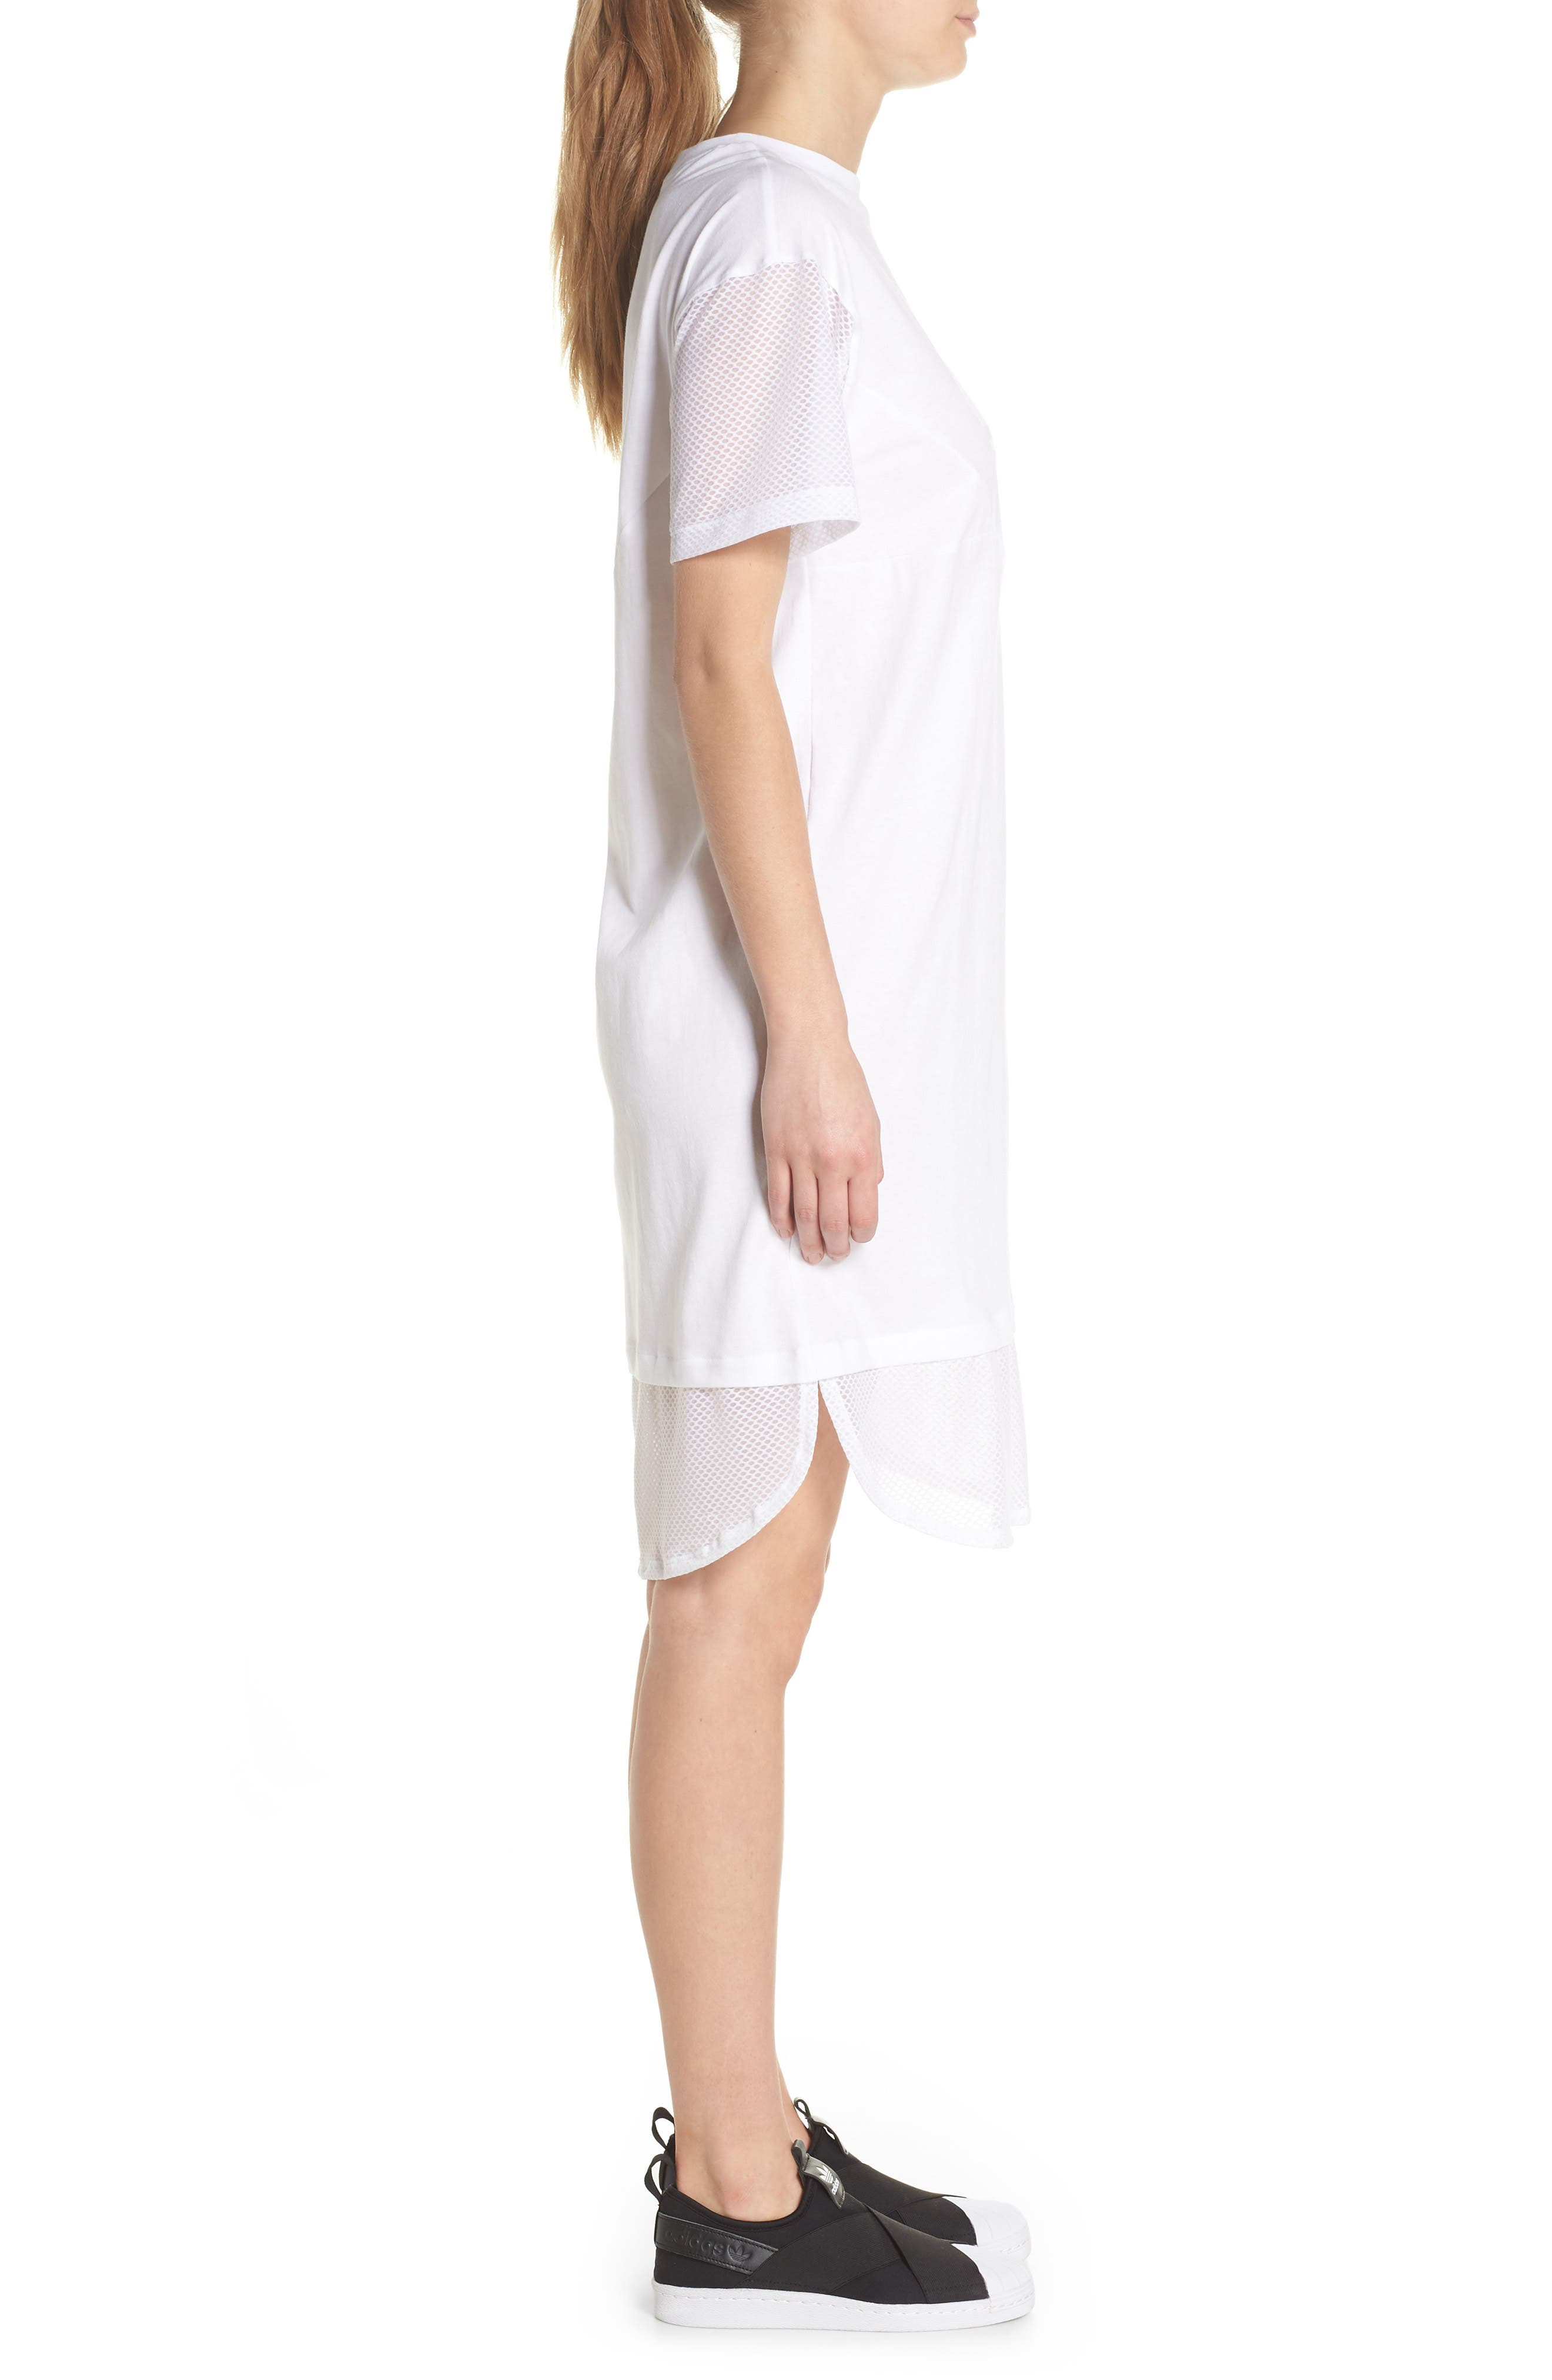 CLRDO T-Shirt Dress,                             Alternate thumbnail 3, color,                             White